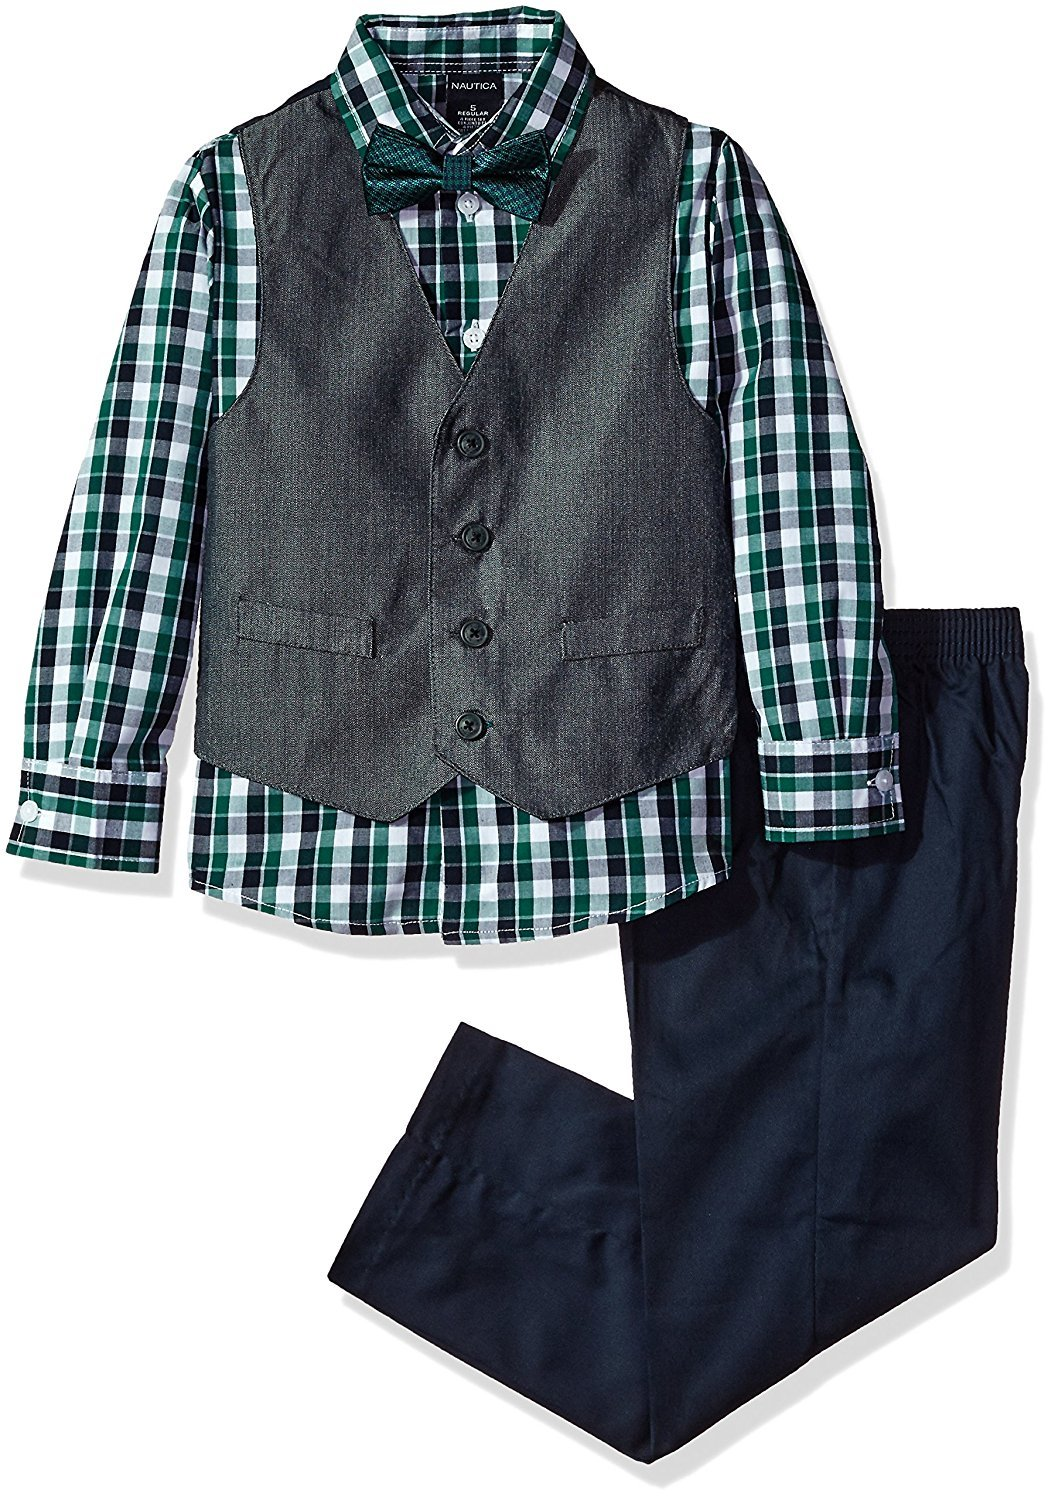 Nautica Boys' Set with Vest, Pant, Shirt, and Bow Tie, Hunter Herringbone, 7